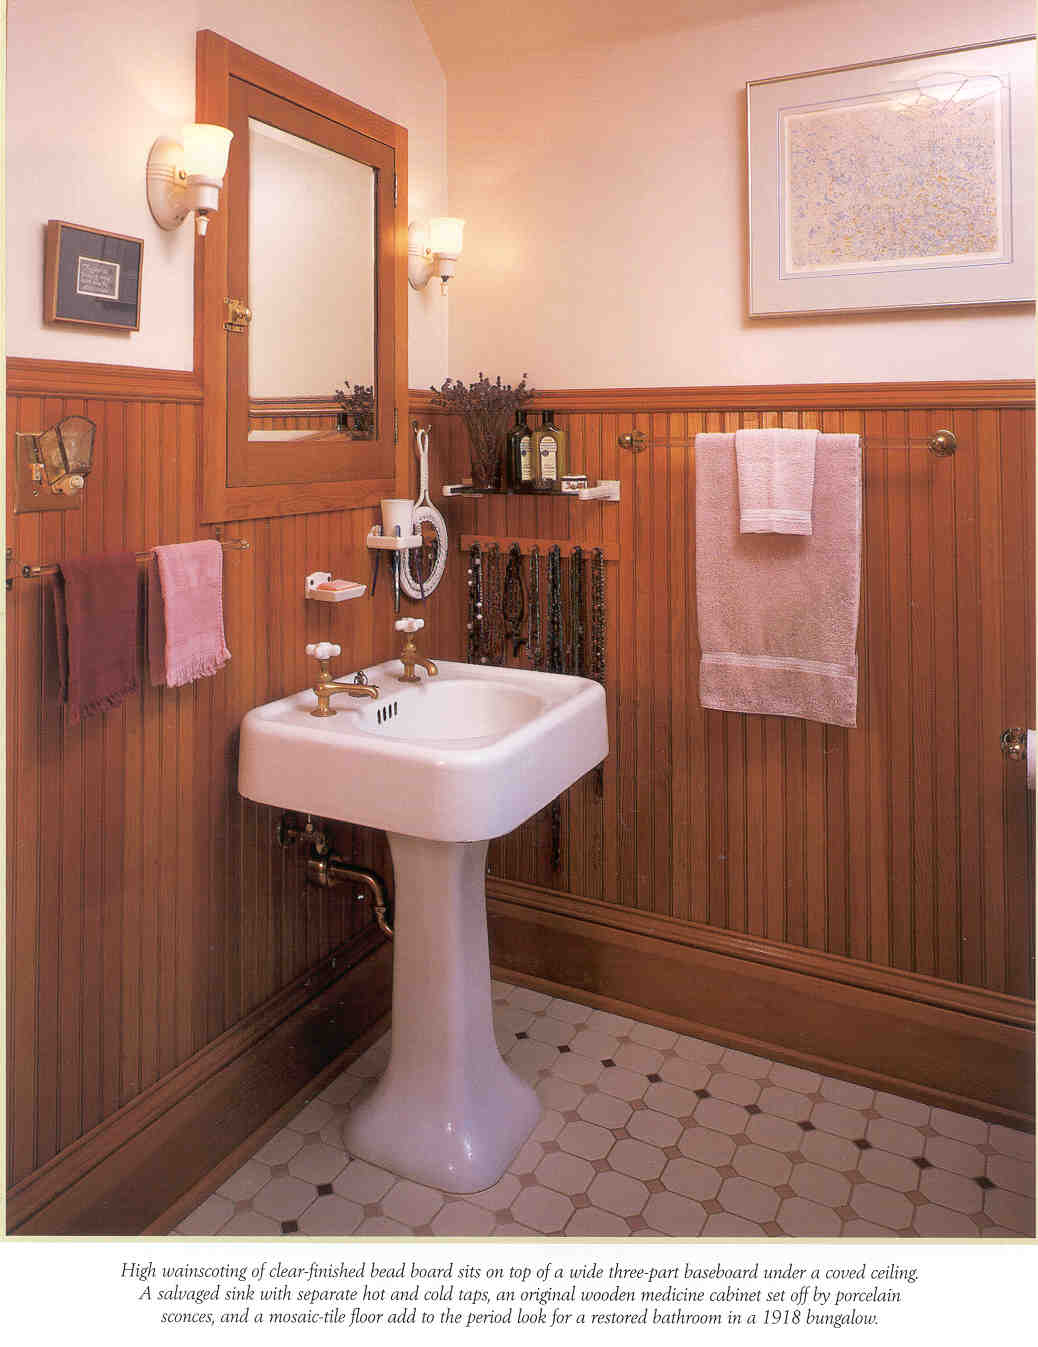 Bungalow bathroom 28 images bungalow bathroom with for Bungalow bathroom designs